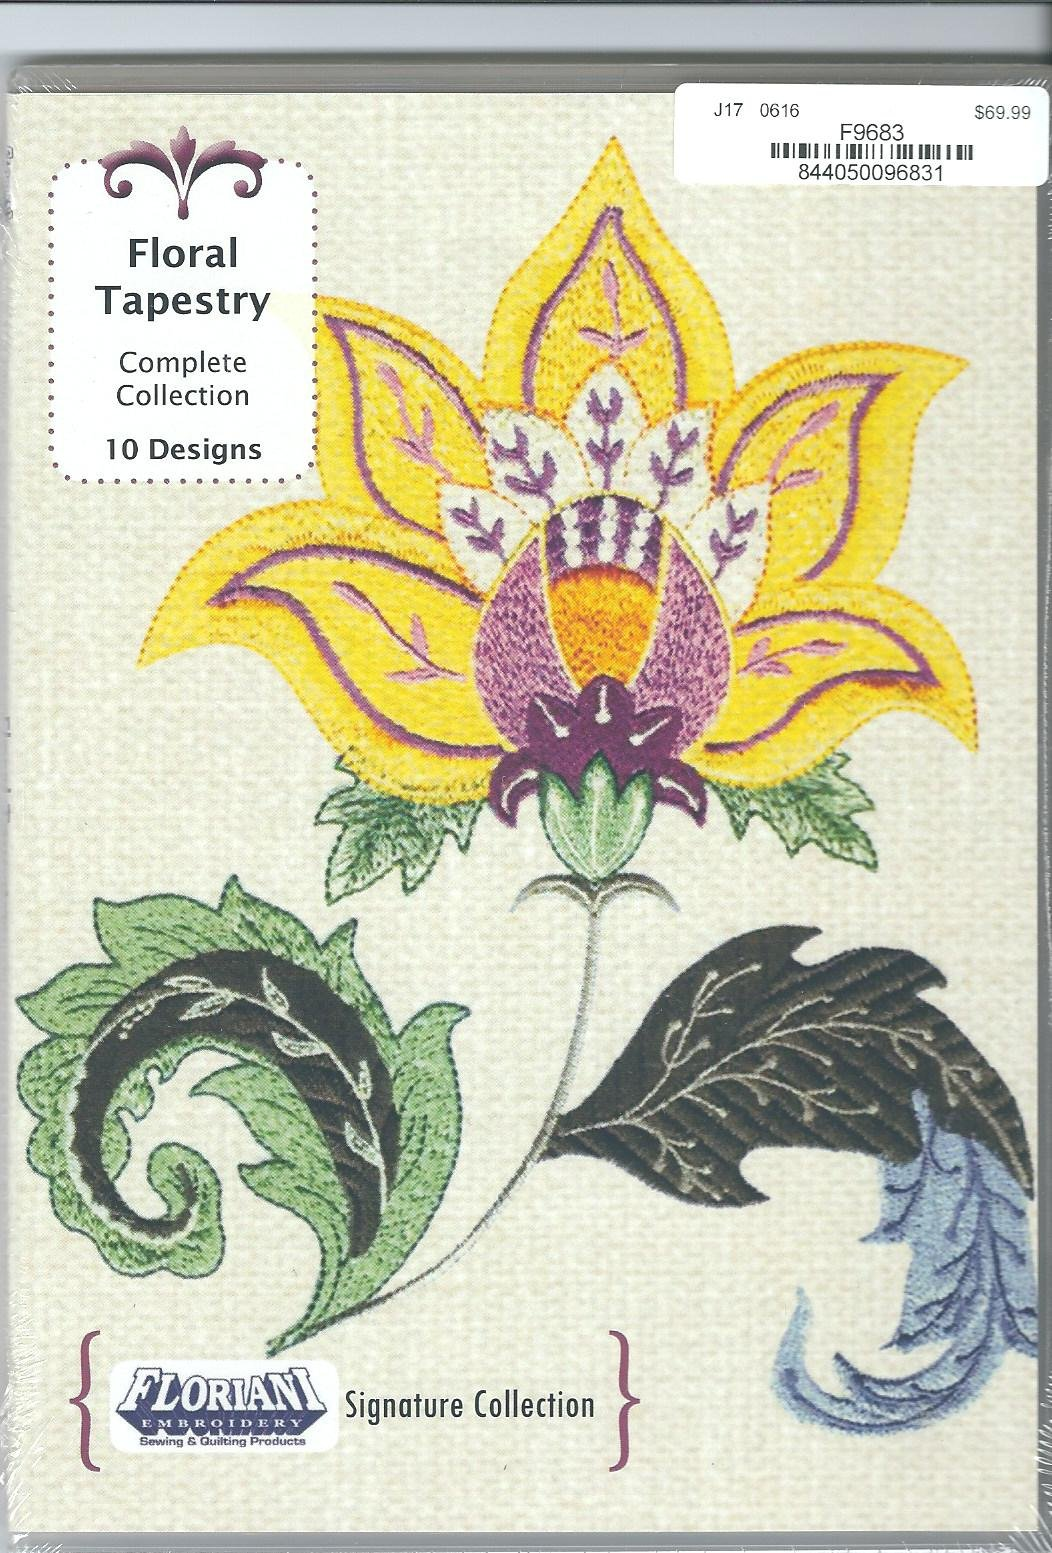 Floriani Embroidery Design Collection Floral Tapestry